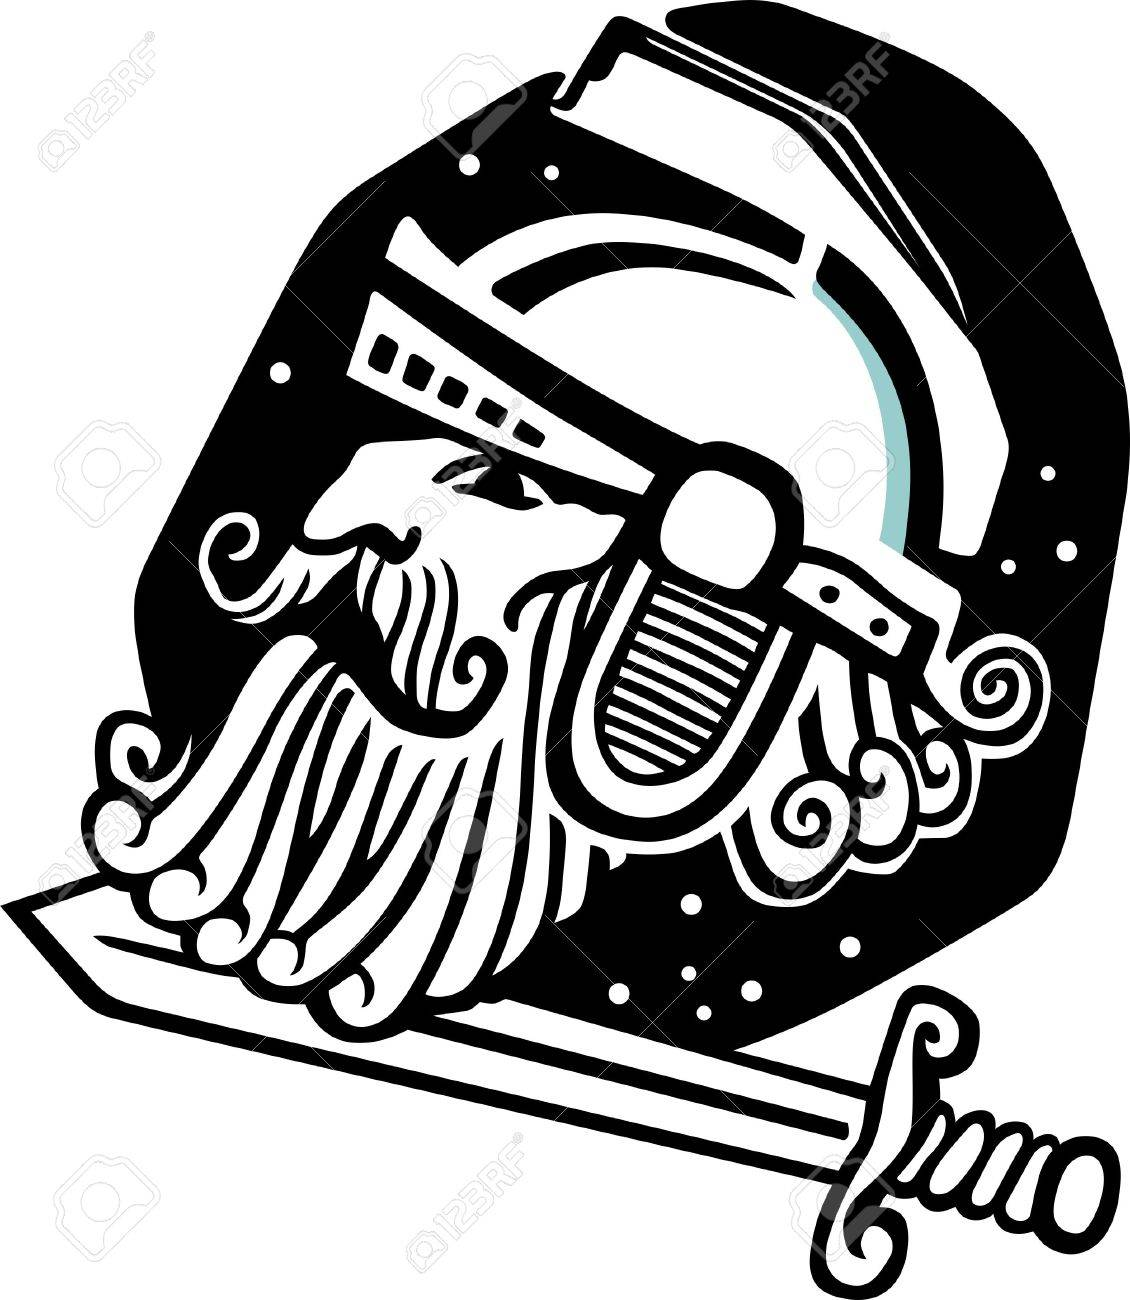 Mars God Of War Stock Vector - 13705301-Mars God of war Stock Vector - 13705301-6